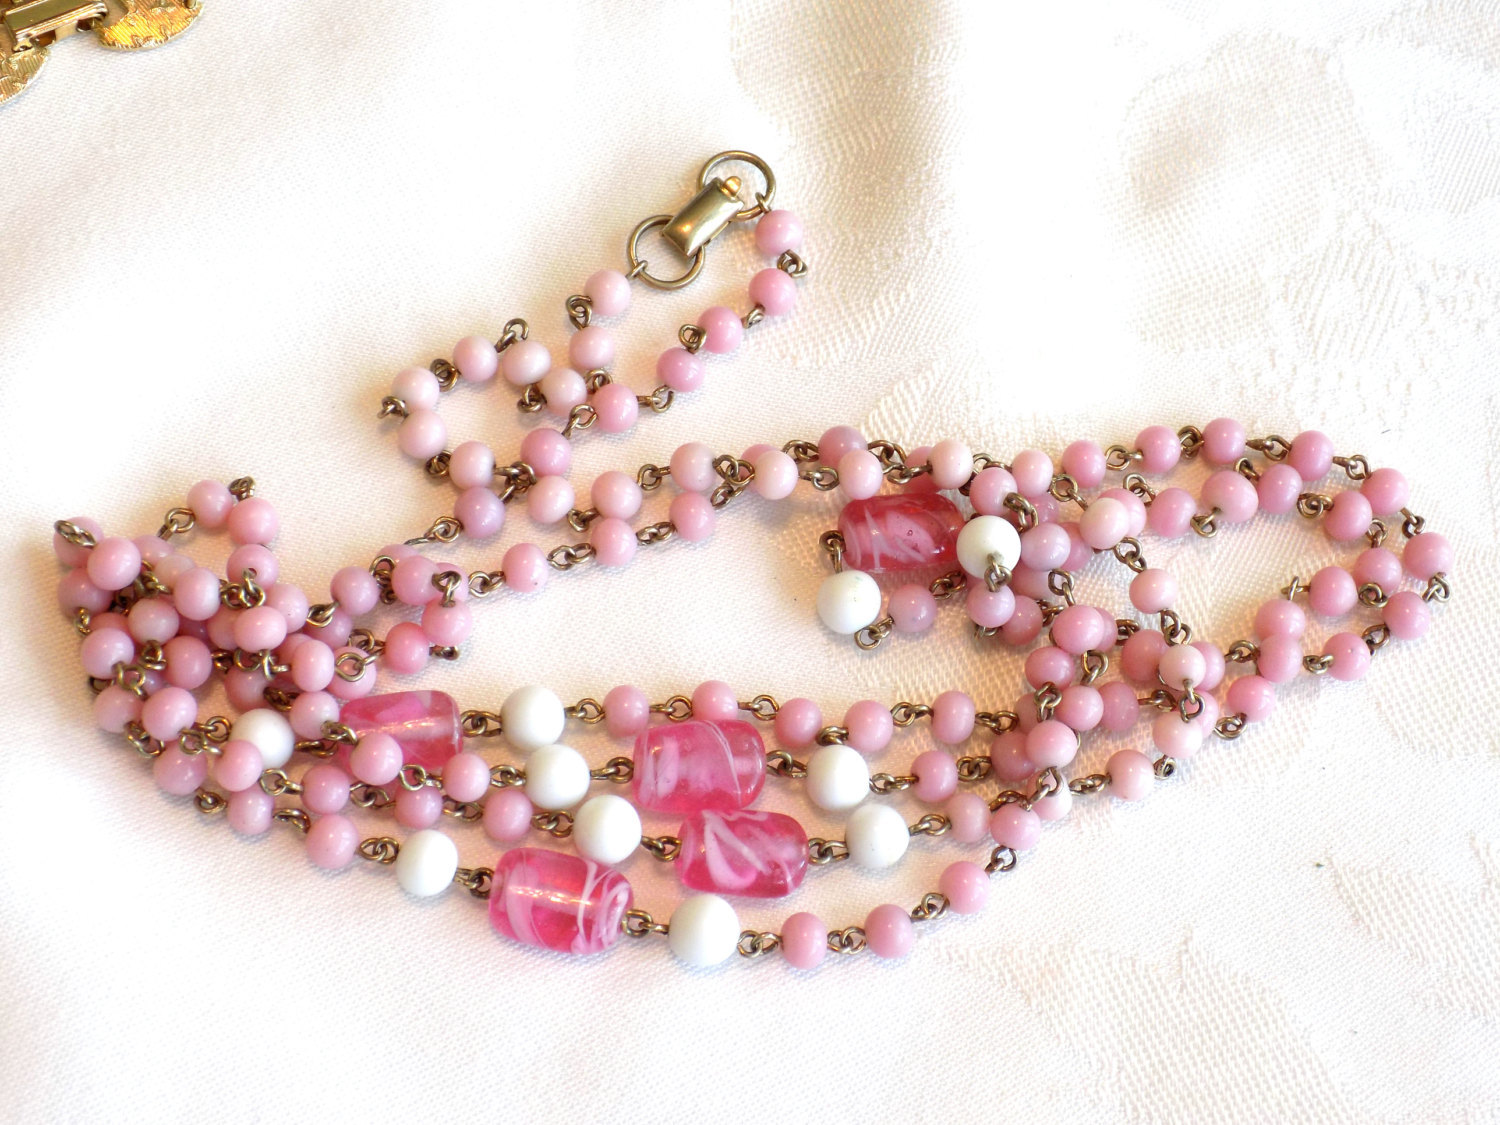 Vintage Coro Beaded Necklace Pink and White Milk Glass Beads and Swirled Pink Gl image 3